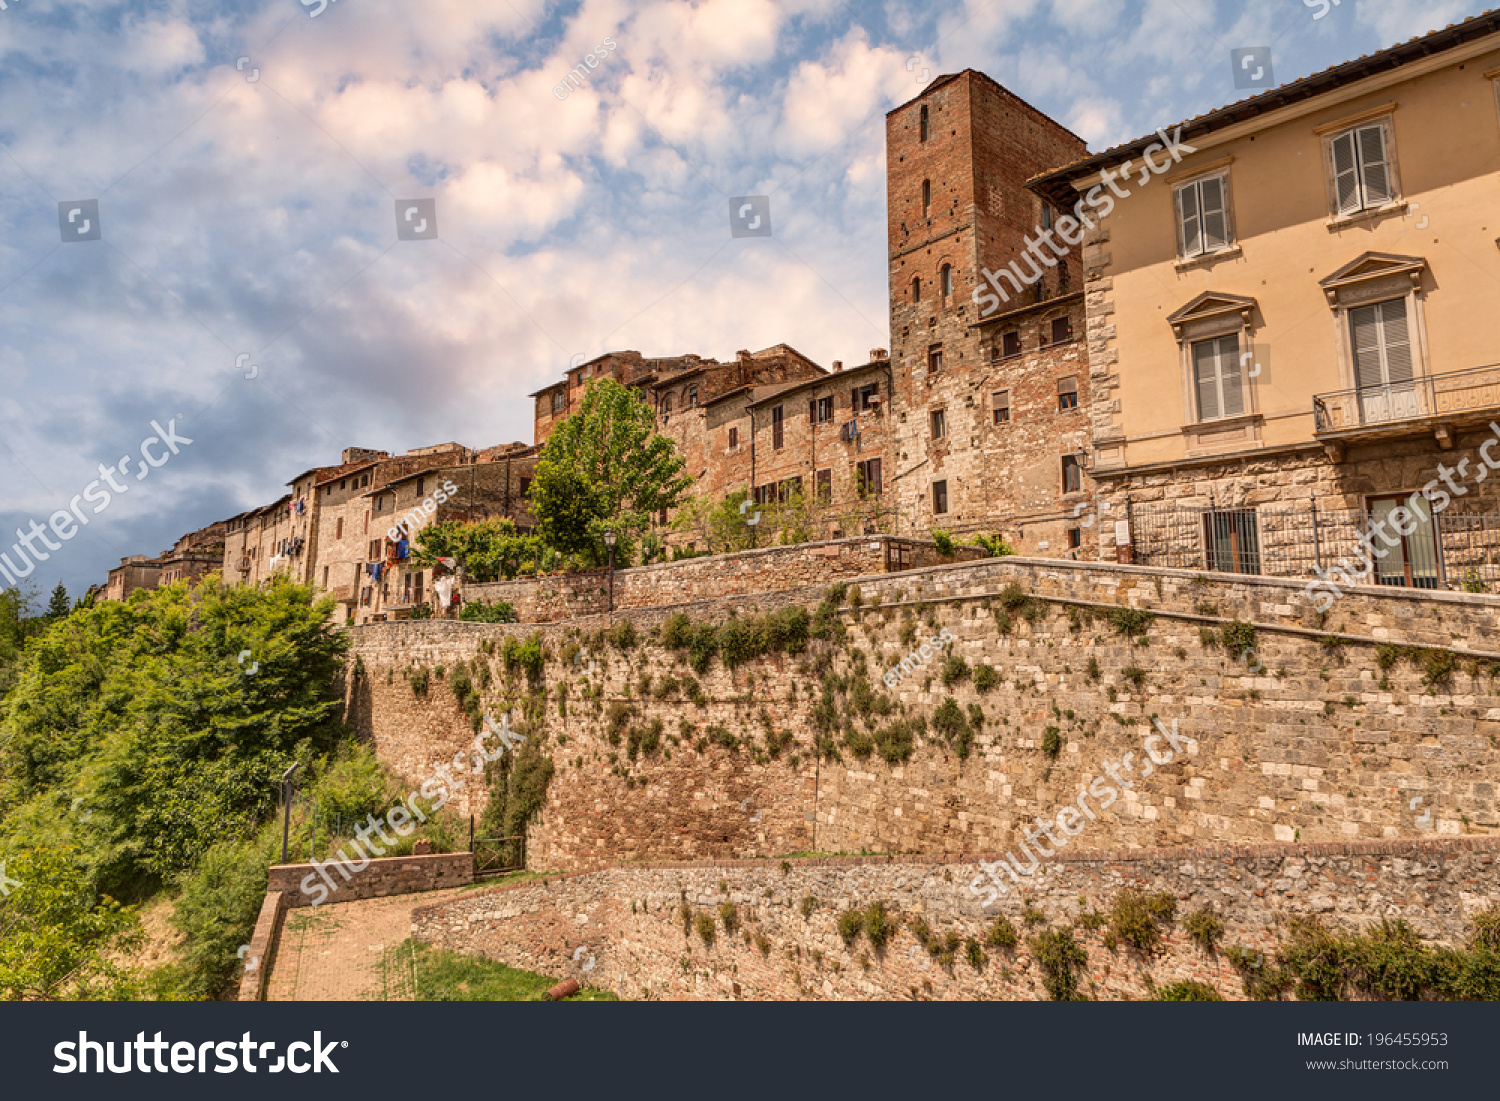 Colle Val D'Elsa Italy  City pictures : Colle di Val d'Elsa, Siena, Tuscany, Italy. View of the medieval town ...